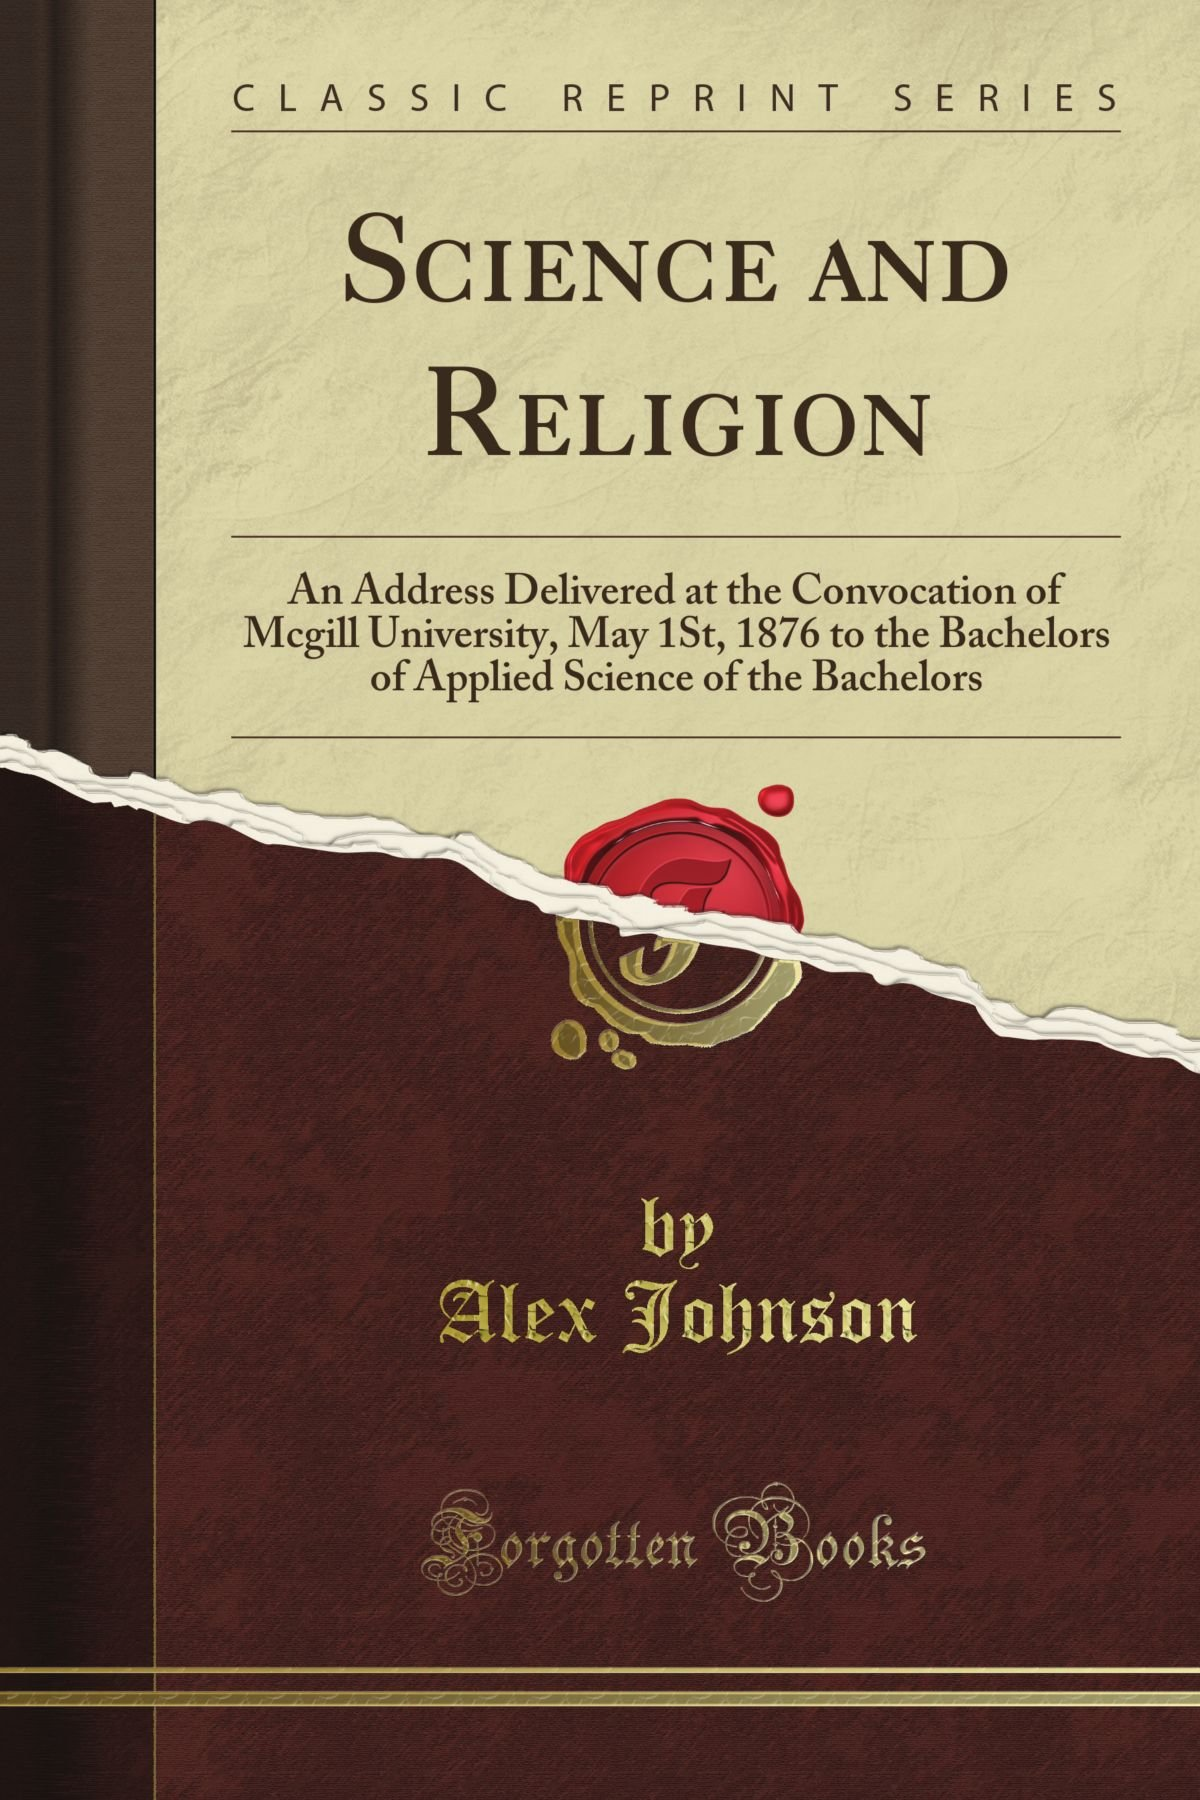 Science and Religion: An Address Delivered at the Convocation of Mcgill University, May 1St, 1876 to the Bachelors of Applied Science of the Bachelors (Classic Reprint) pdf epub